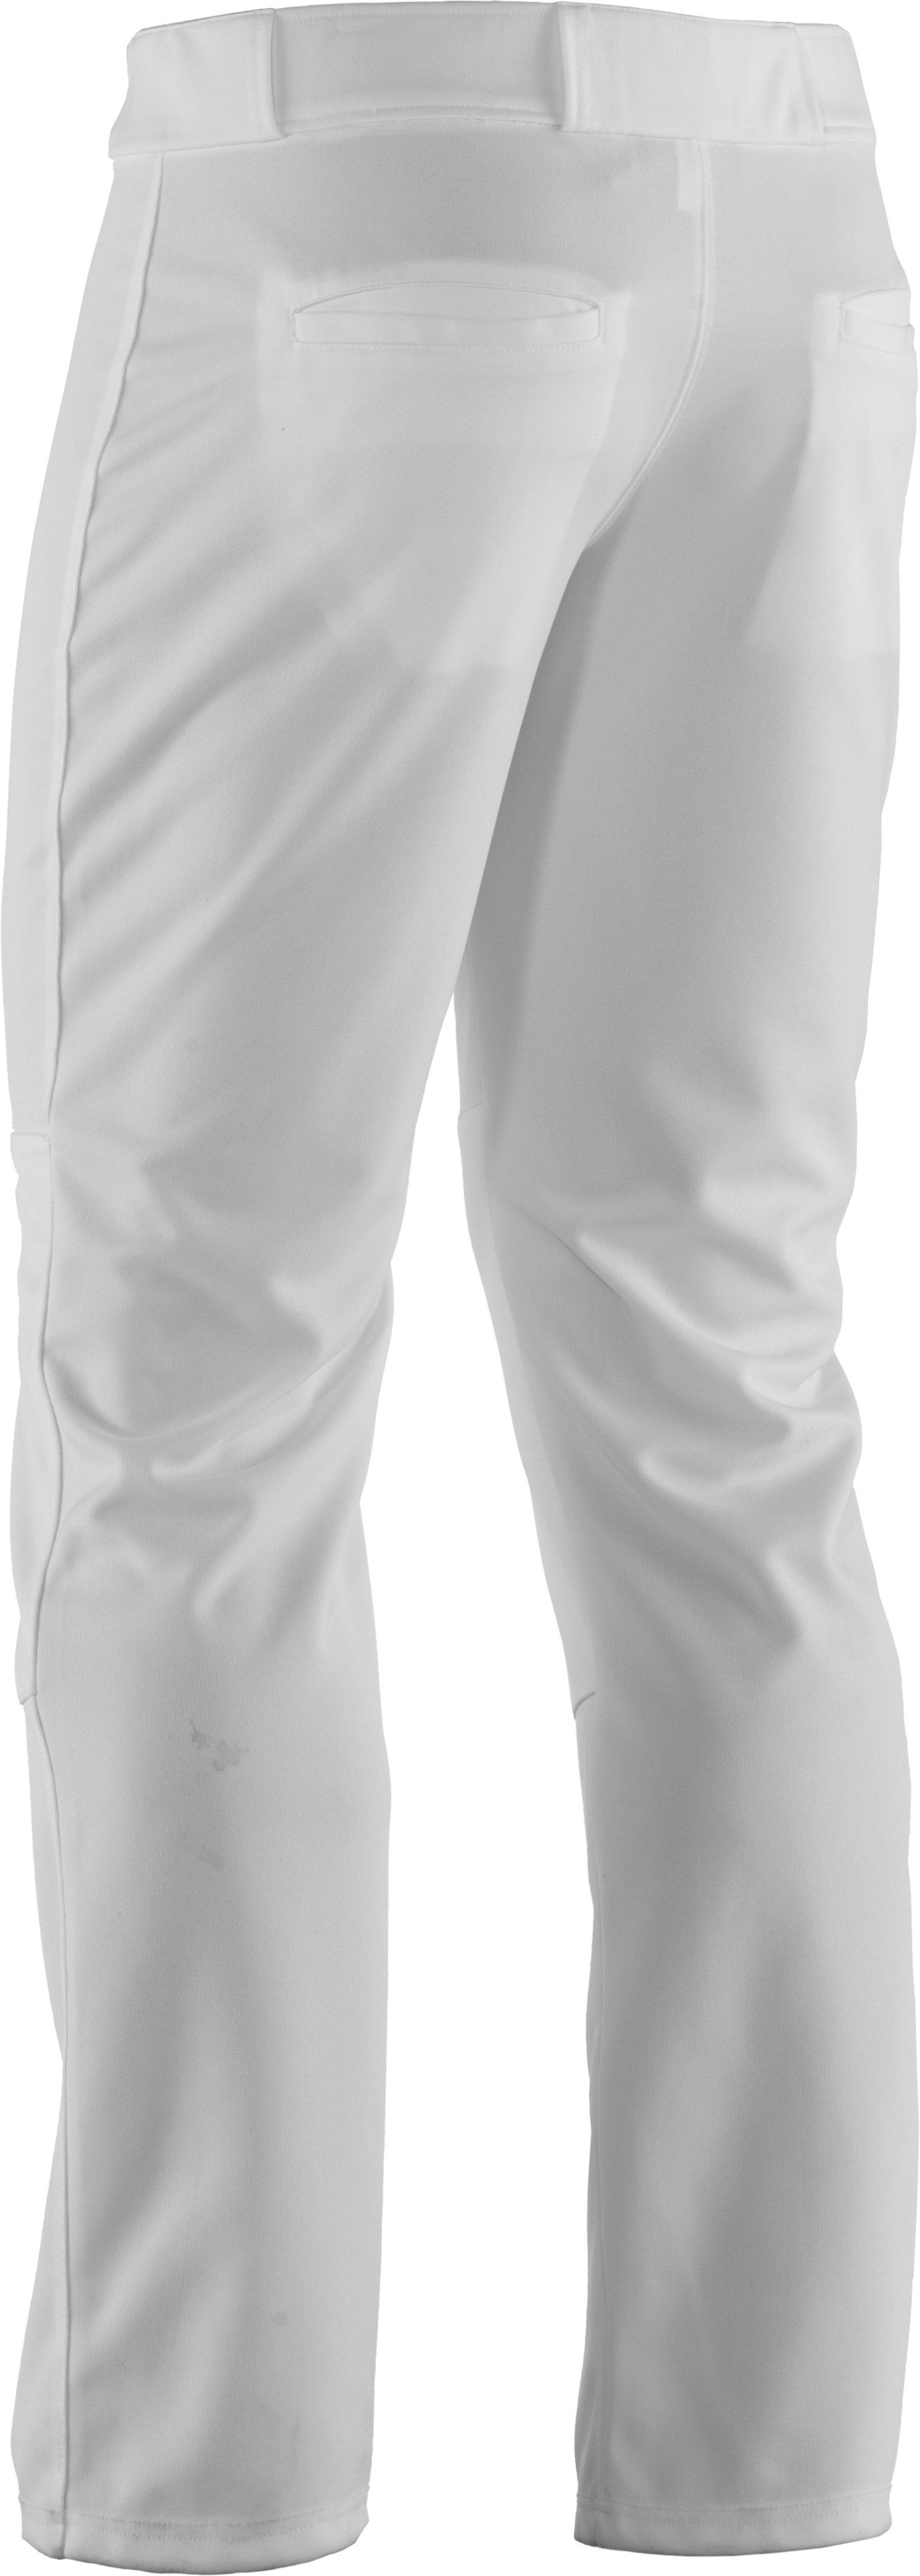 UA Clean Up - Pantalon de baseball pour homme, Blanc